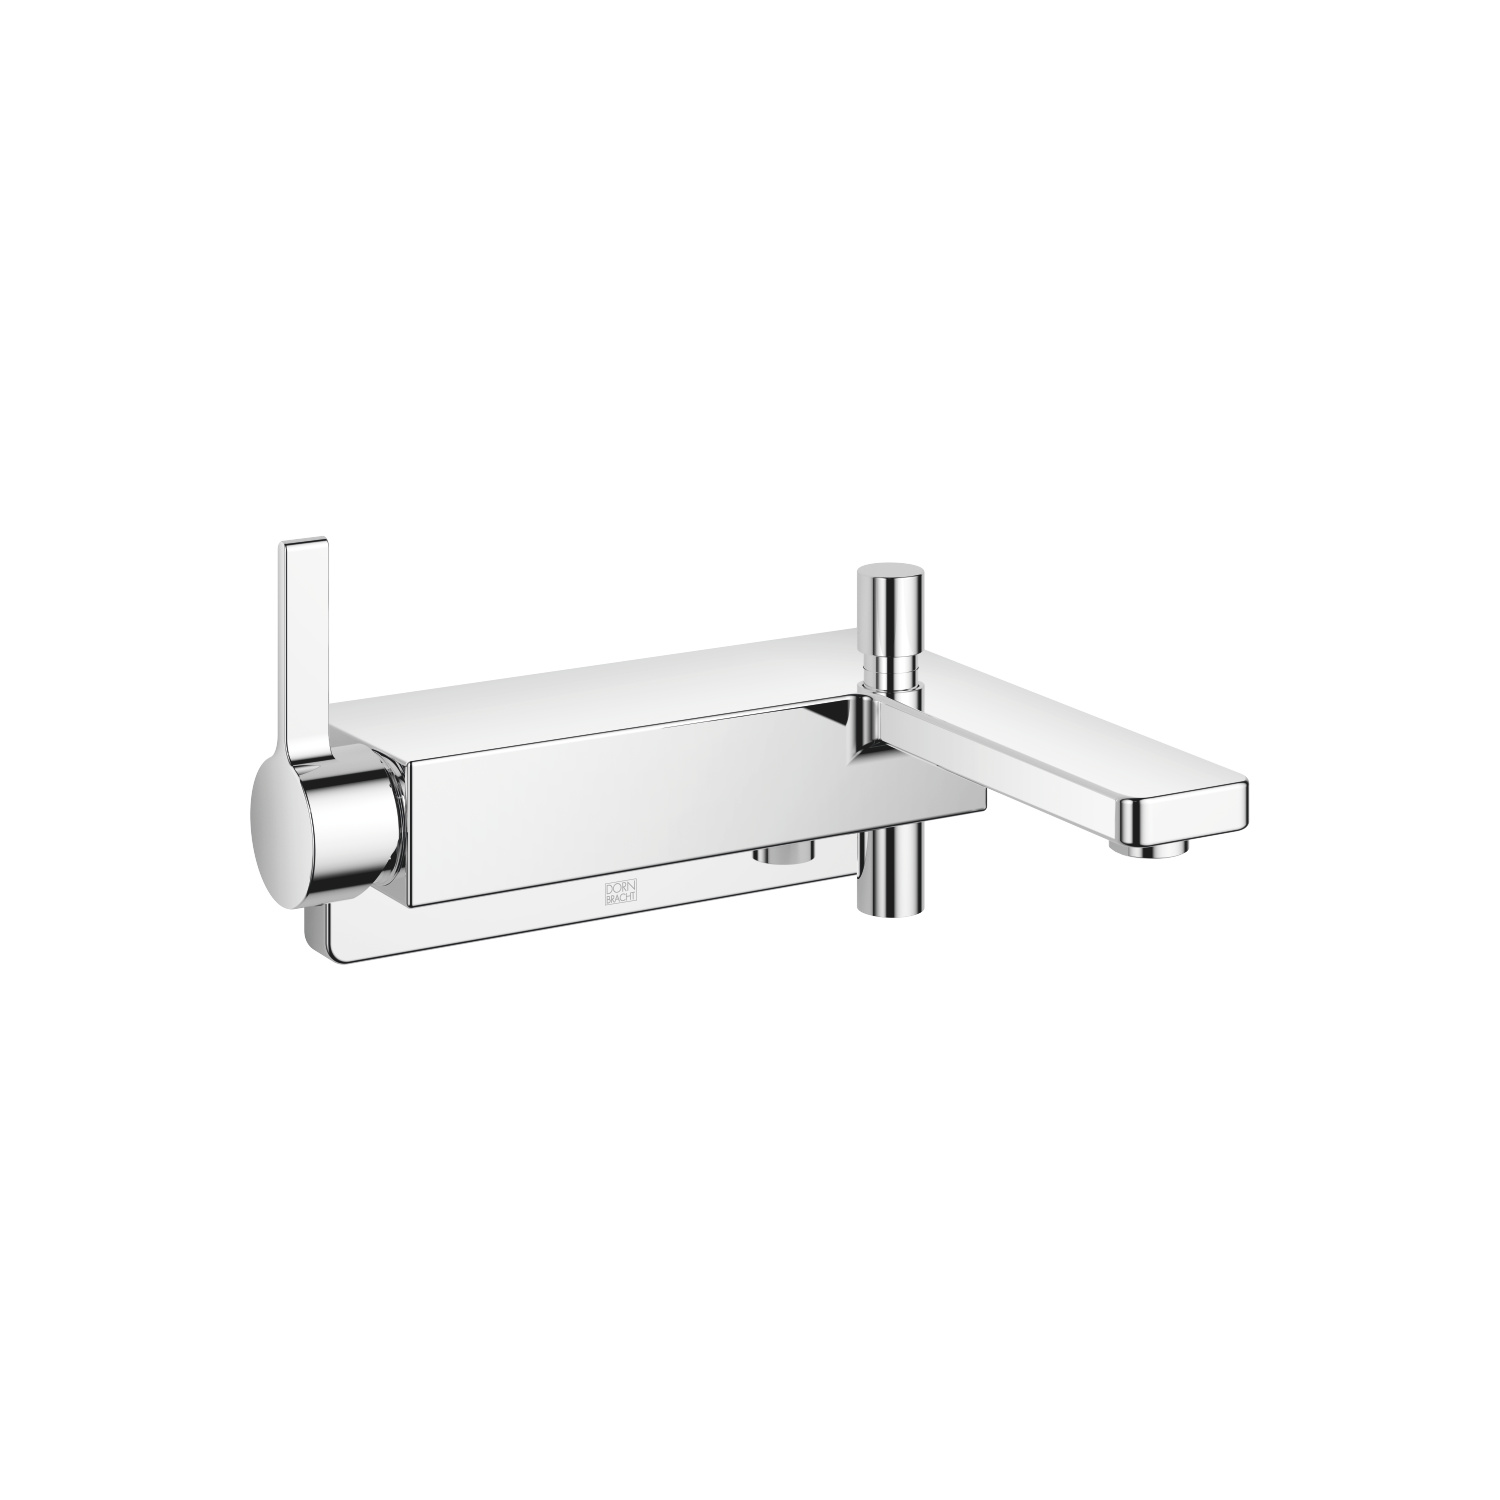 Single-lever bath mixer for wall mounting without shower set - polished chrome - 33 200 710-00